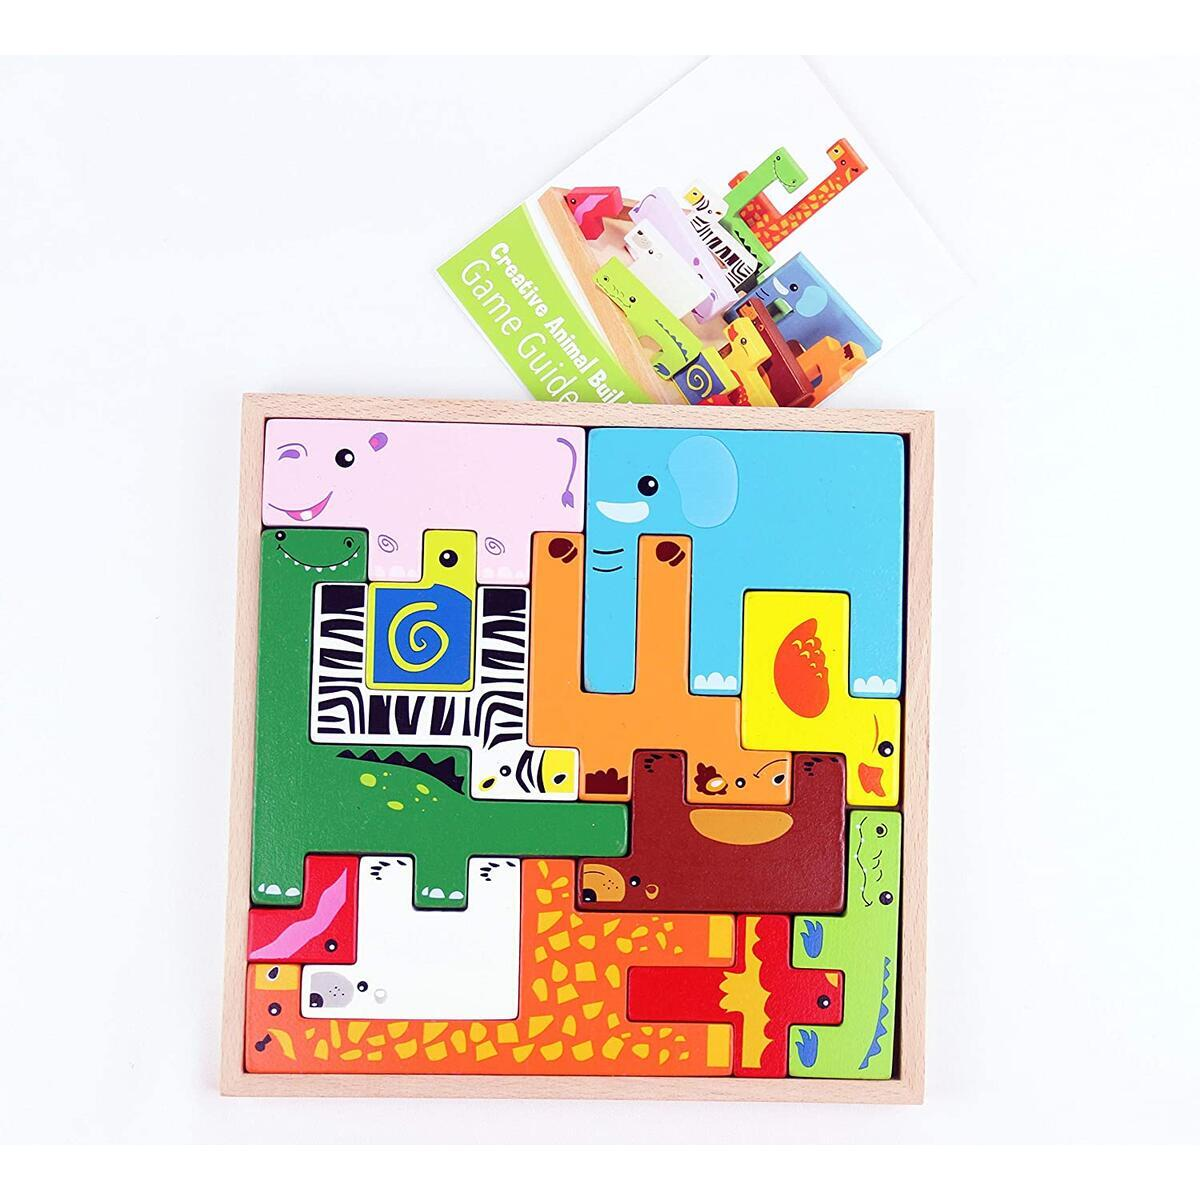 WOODEN BABY TOYS TODDLER PUZZLES AGES 2-4 PLAN TOYS WOODEN TOYS FOR TODDLERS COLORFUL BRAIN TEASER